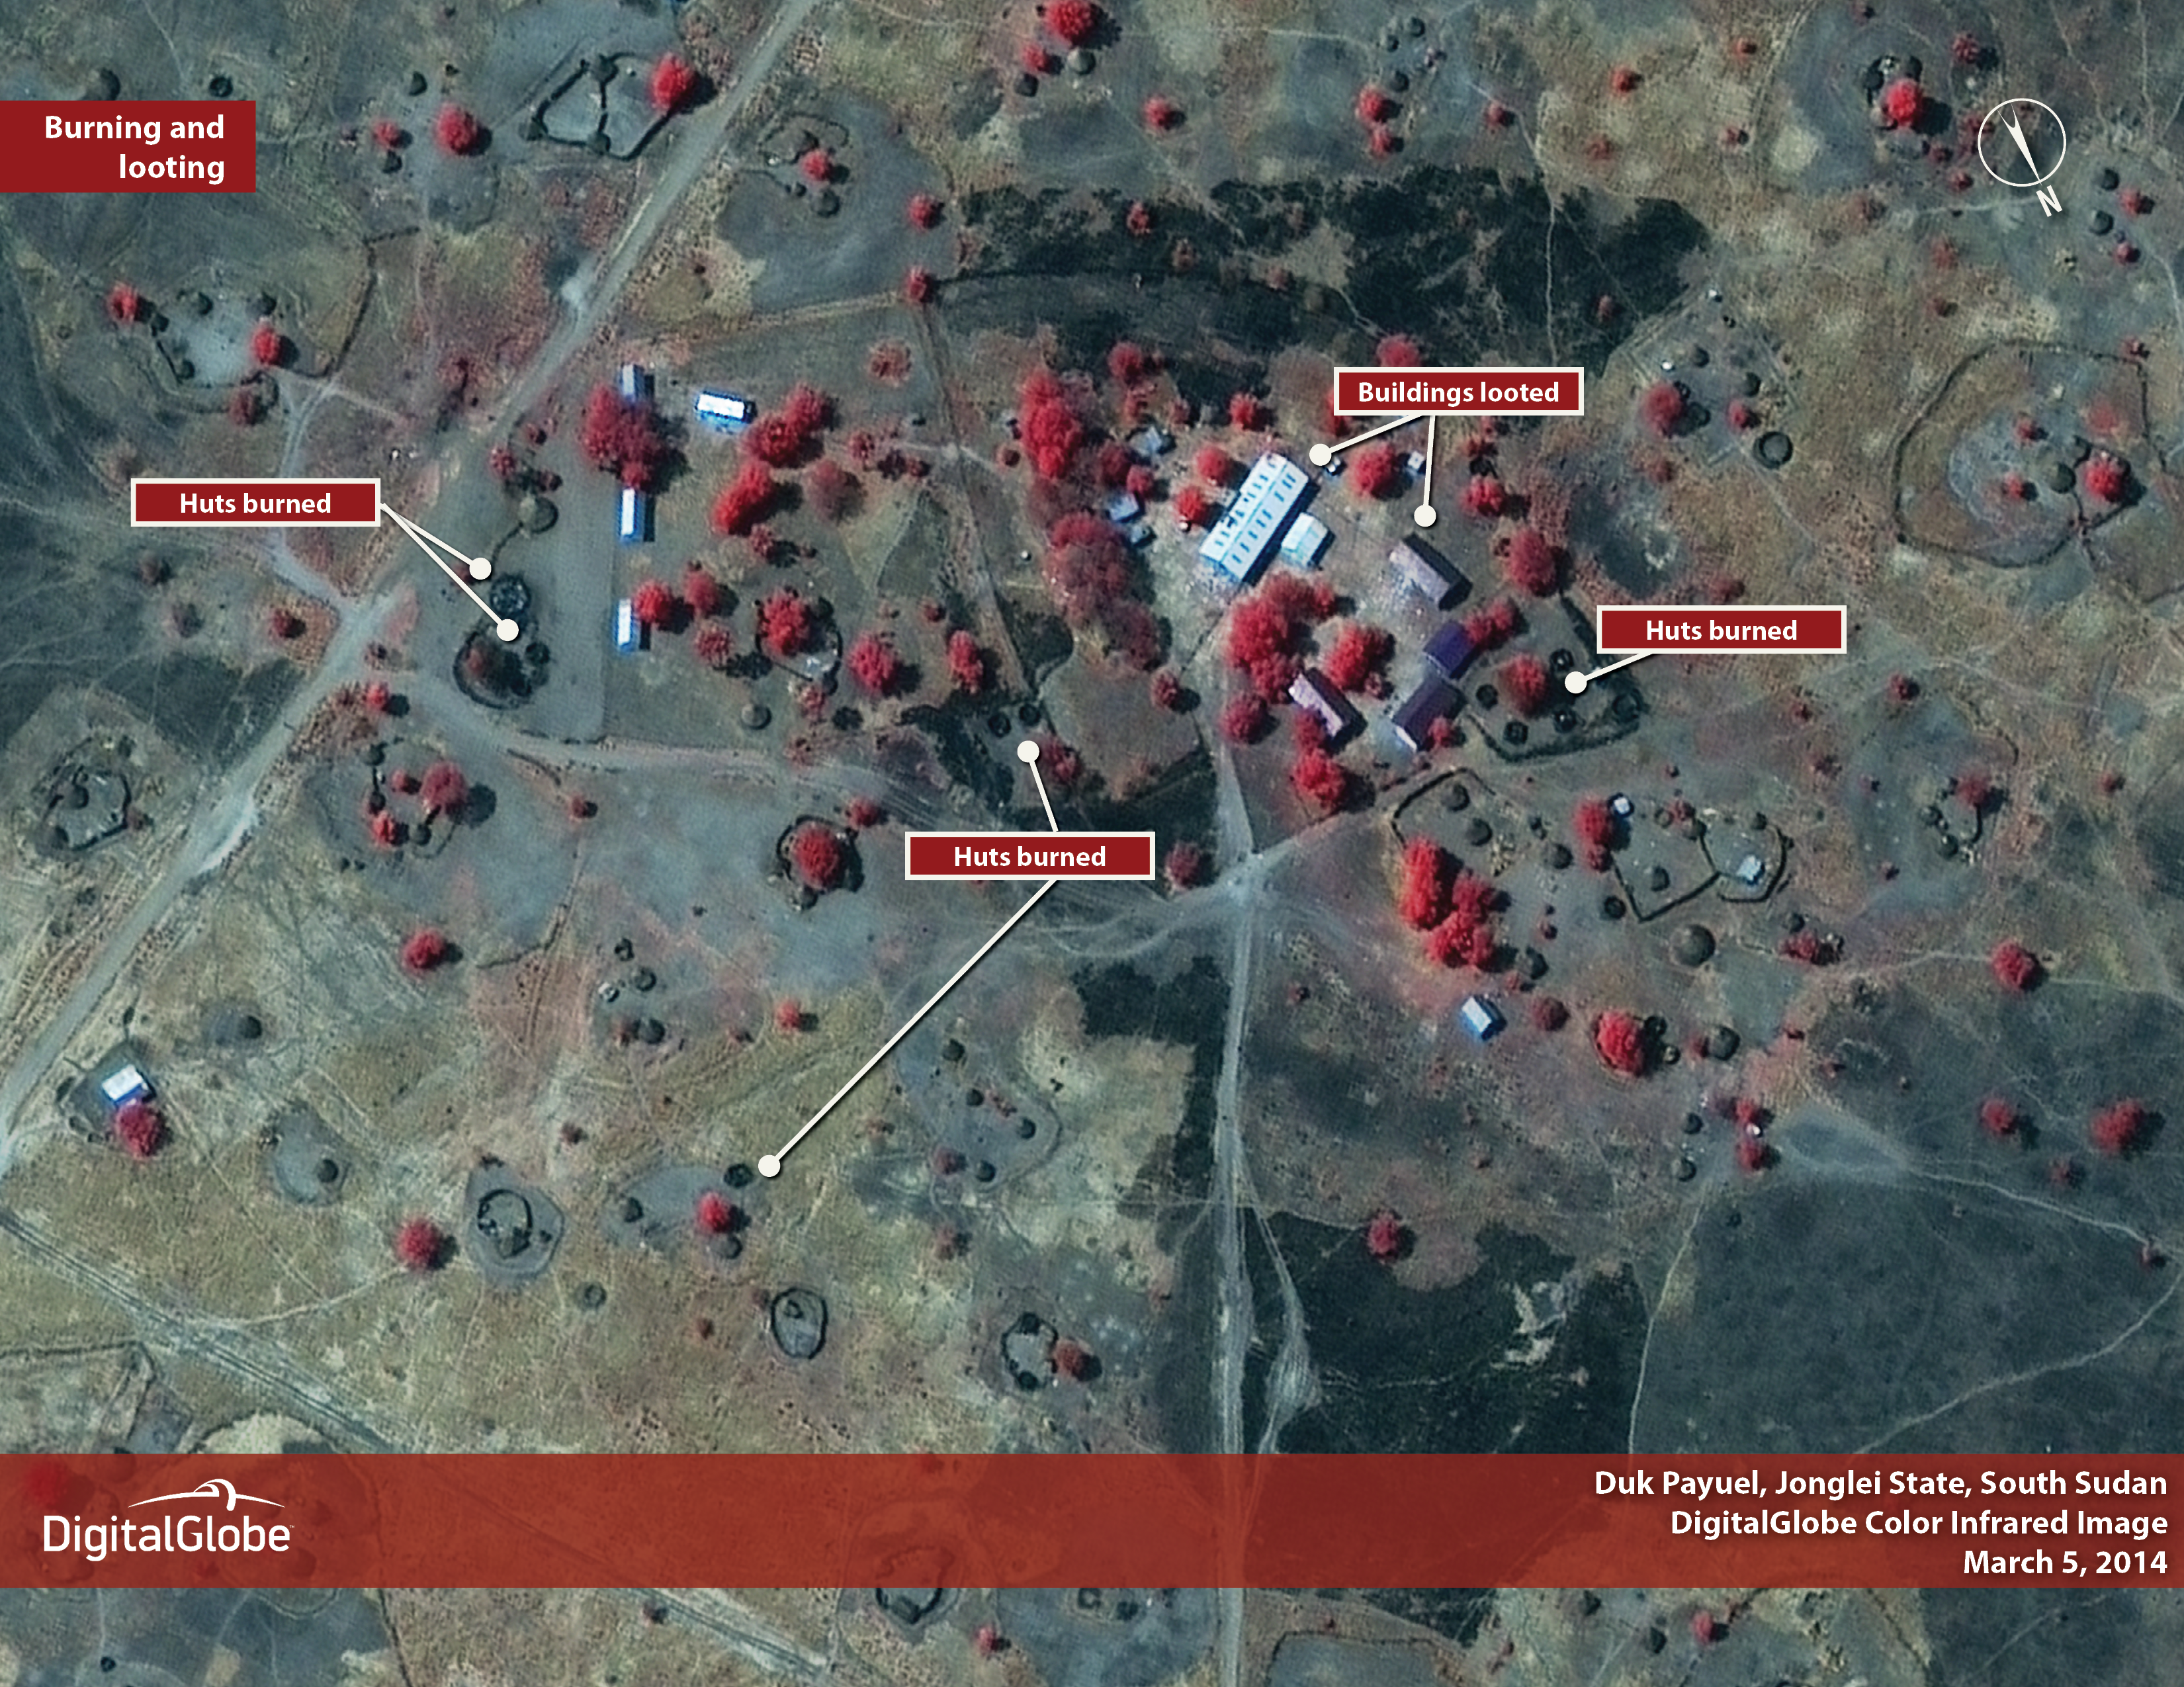 IMAGE 3: Though the total number of damaged or destroyed homes in Duk is unknown, at least 10 huts were burned in the area reviewed by DigitalGlobe analysts, who also identified buildings that had been looted between February 9, 2014 and March 5, 2014.